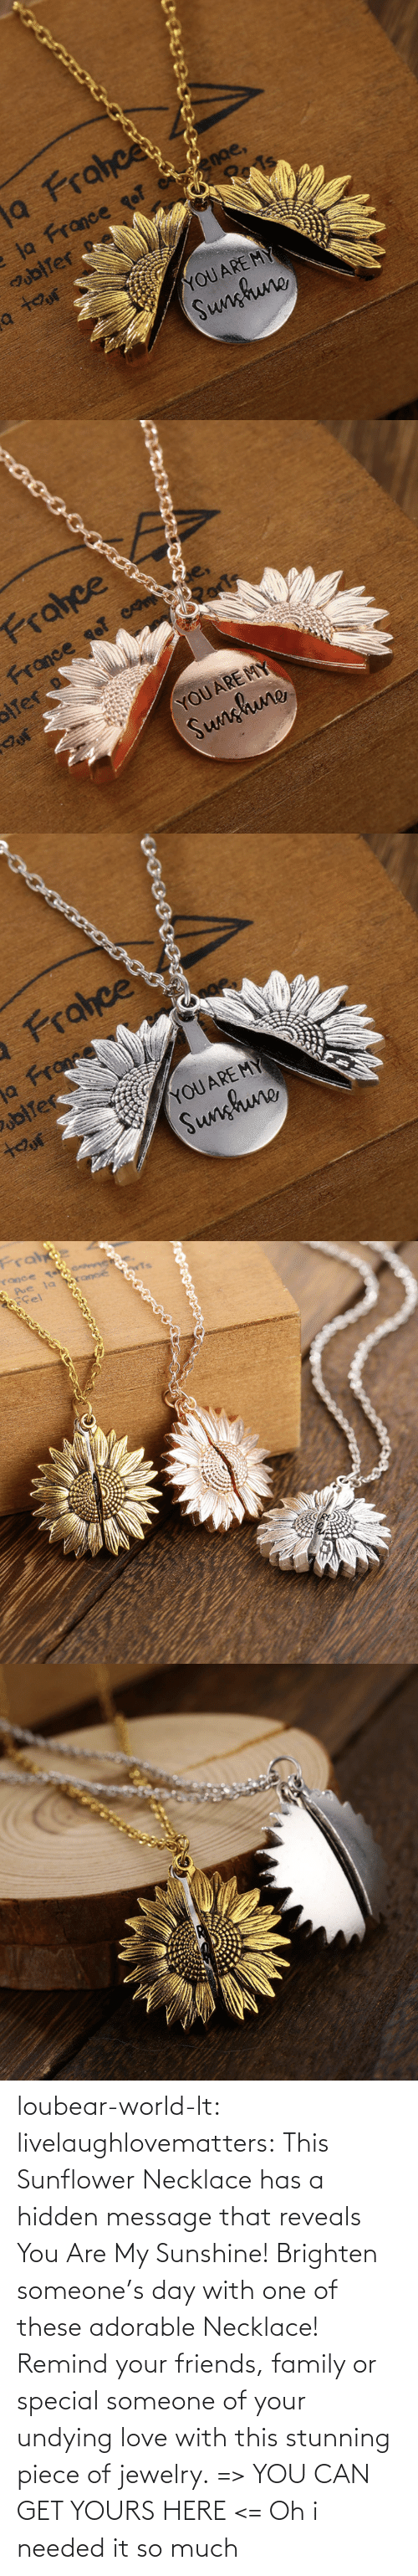 sunshine: loubear-world-lt: livelaughlovematters:   This Sunflower Necklace has a hidden message that reveals You Are My Sunshine! Brighten someone's day with one of these adorable Necklace! Remind your friends, family or special someone of your undying love with this stunning piece of jewelry. => YOU CAN GET YOURS HERE <=    Oh i needed it so much